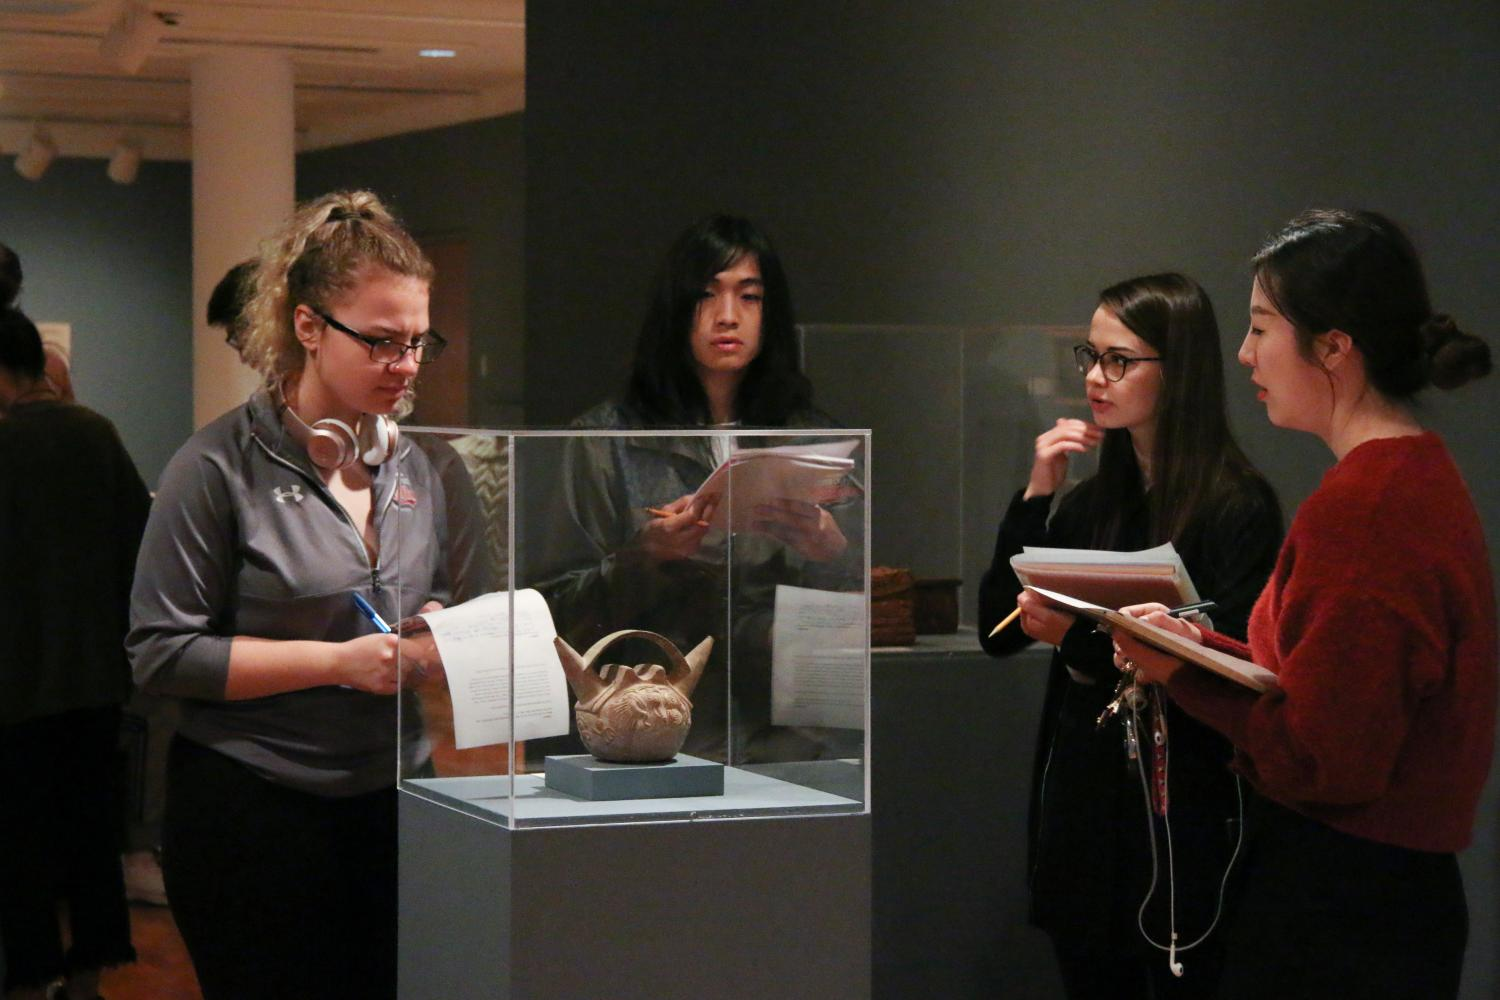 Students from Art in a Global Context examine artworks in the Arts of the Ancient Andes gallery at KAM